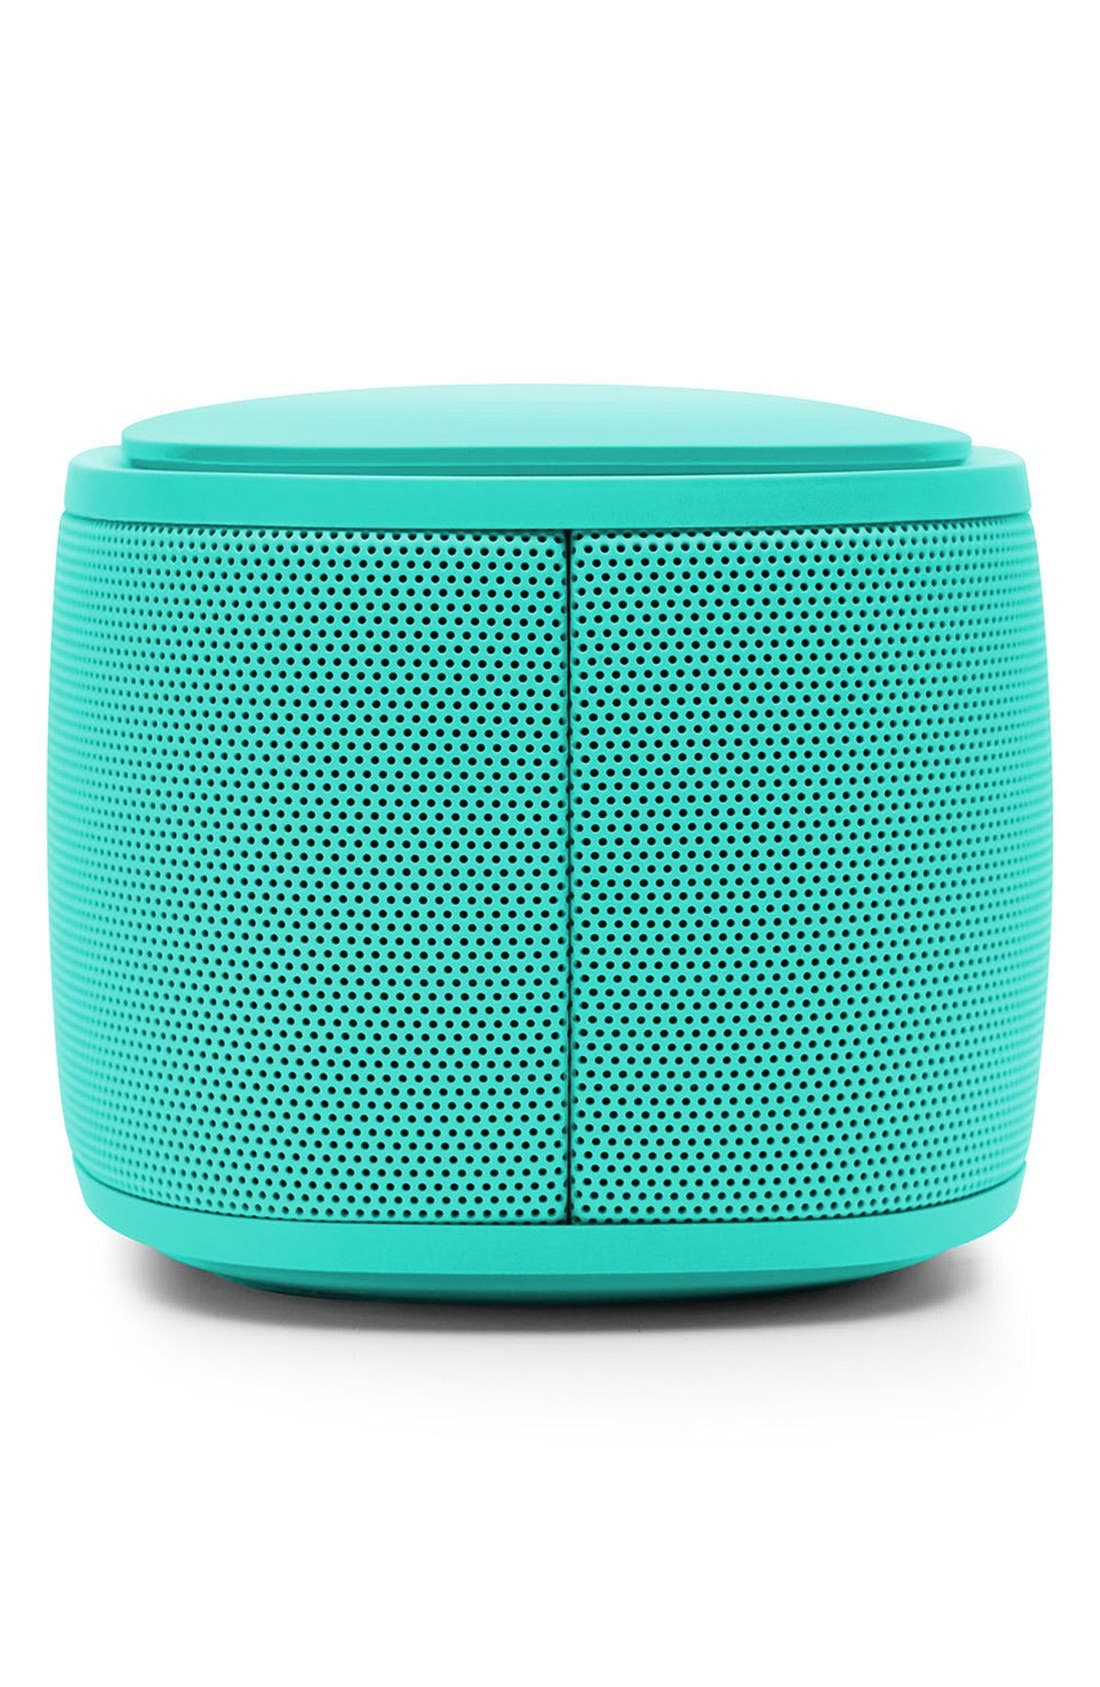 Alternate Image 3  - id America 'TouchTone' Portable Wireless Speaker